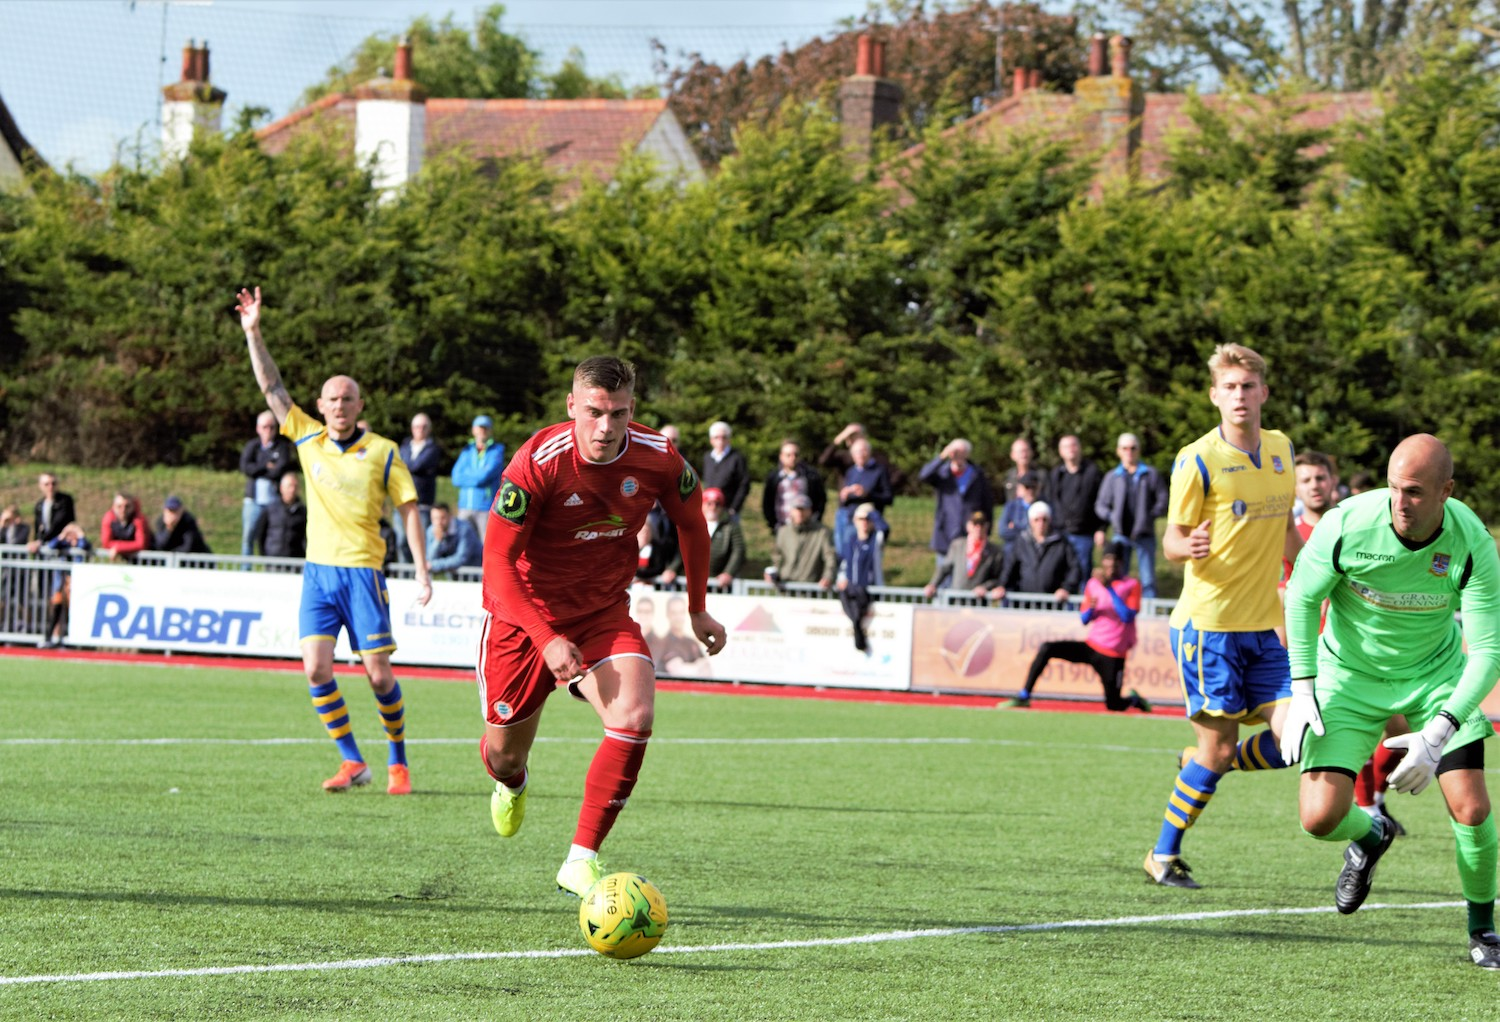 Read the full article - HIGHLIGHTS | 19/20: Kingstonian [H] – League